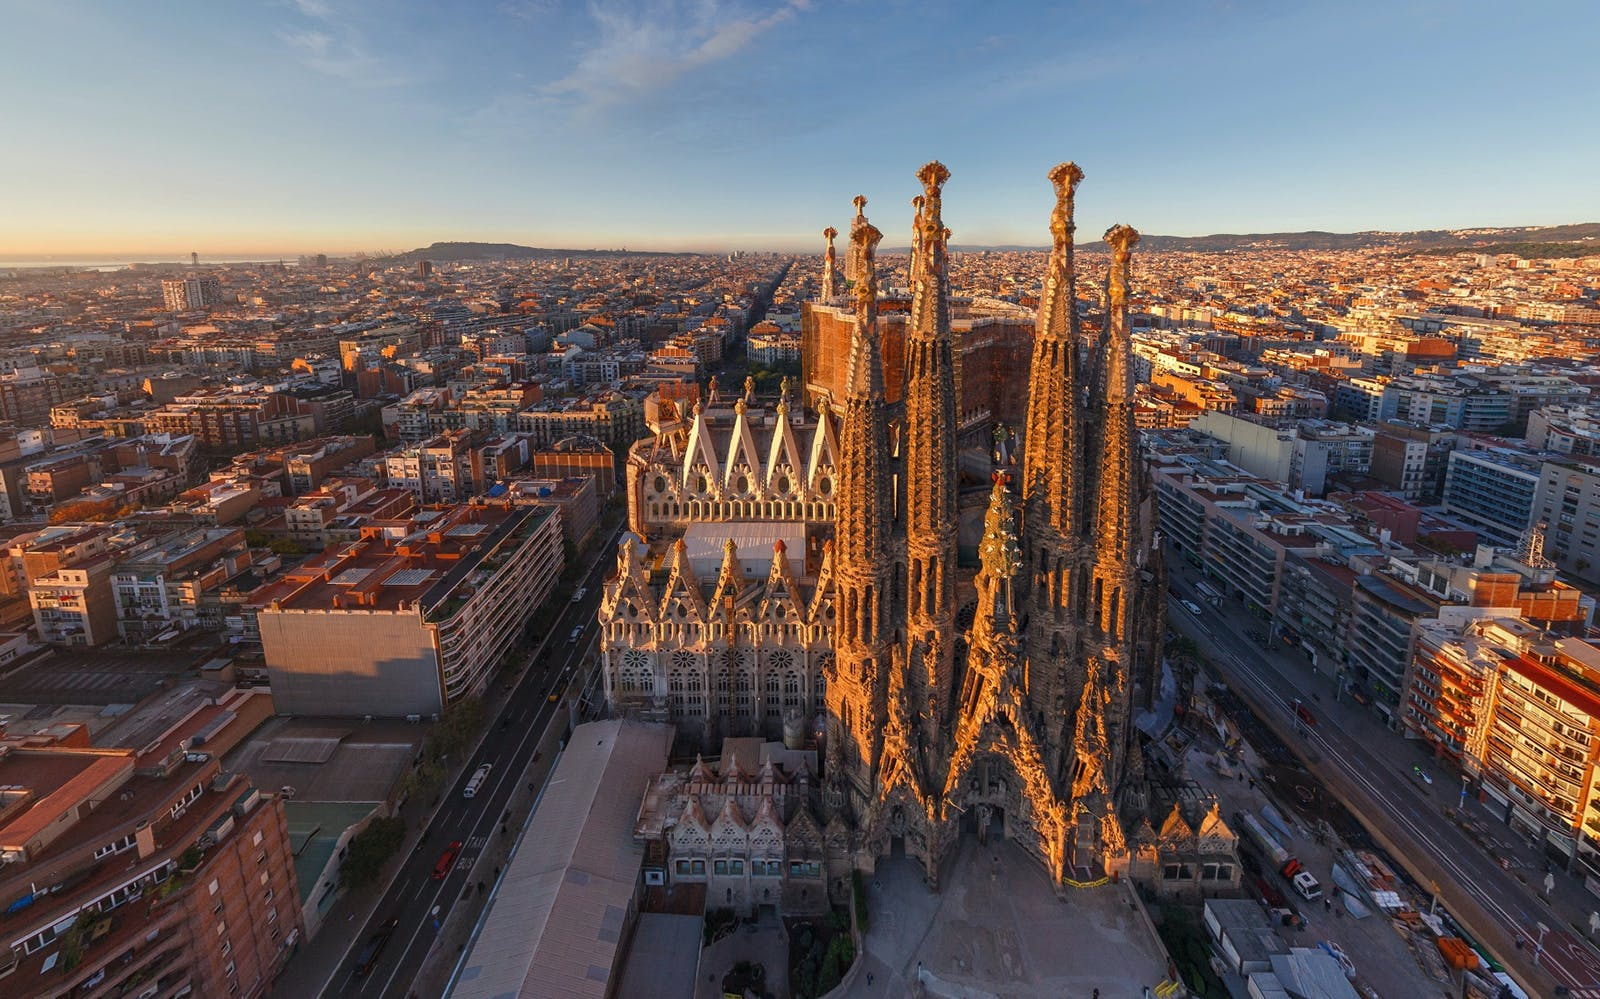 sagrada familia skip the line tickets with tower access and audio guide-2